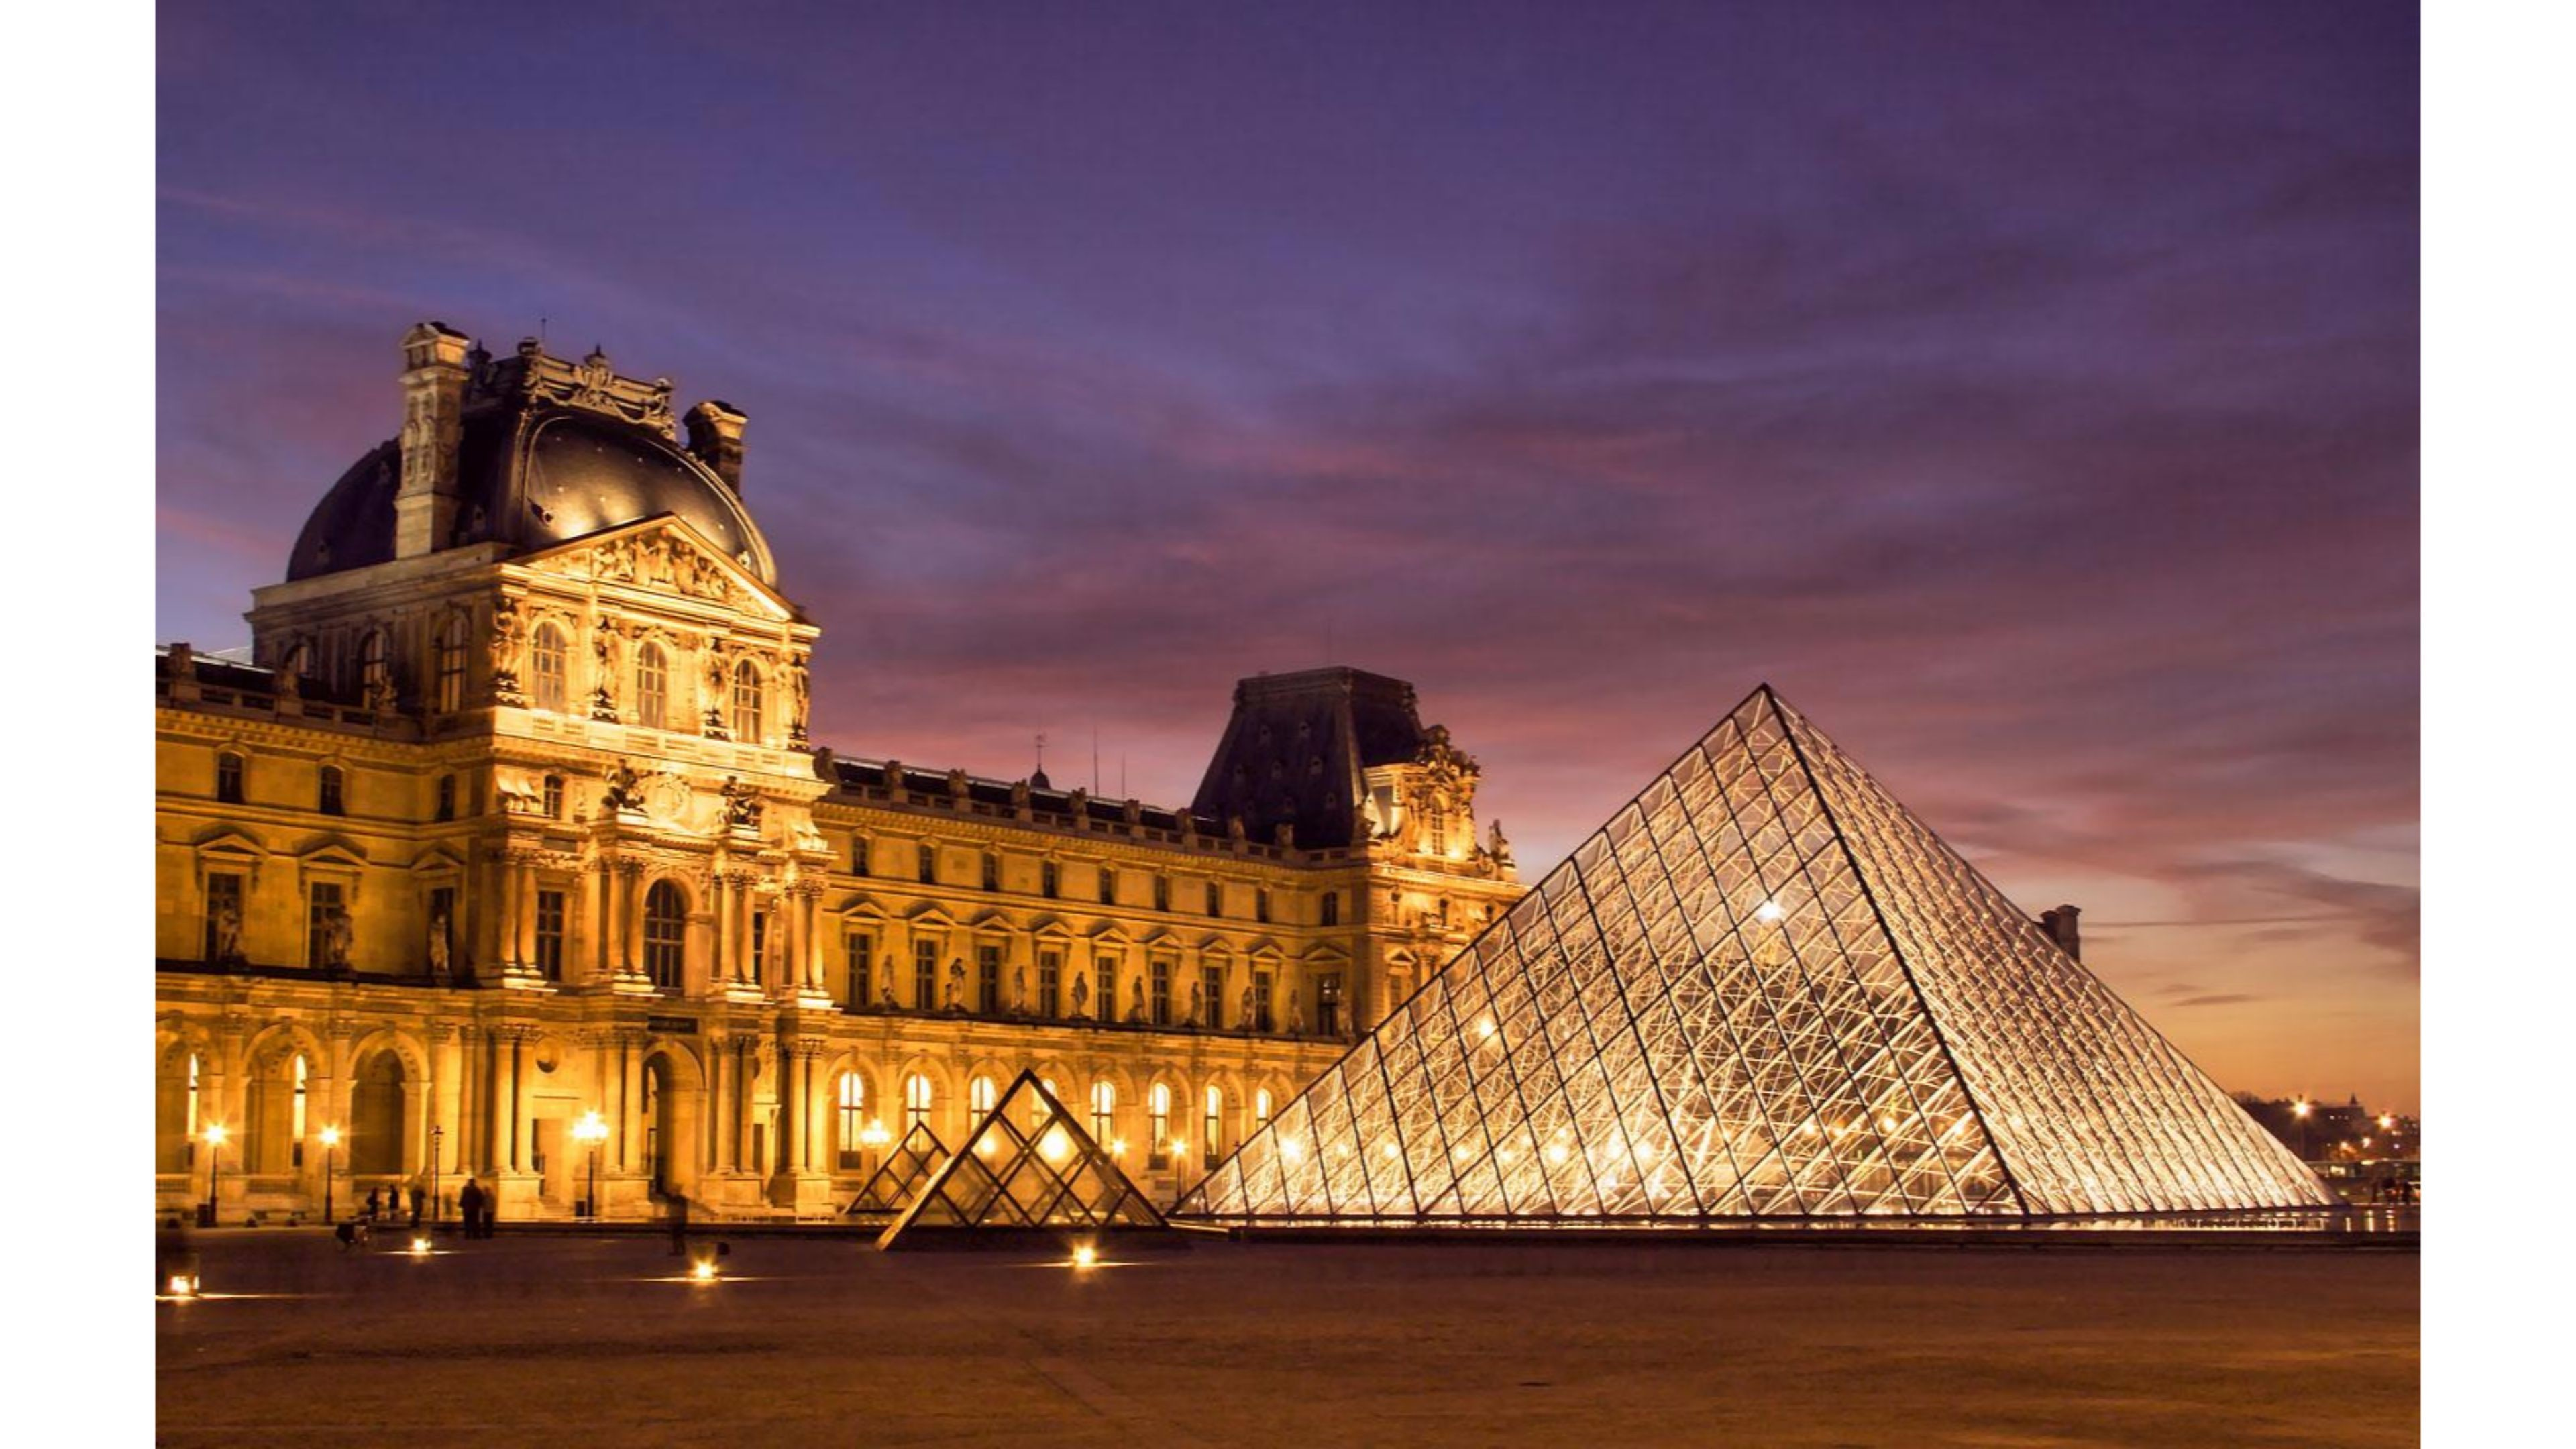 67 Paris France Wallpapers on WallpaperPlay 3840x2160